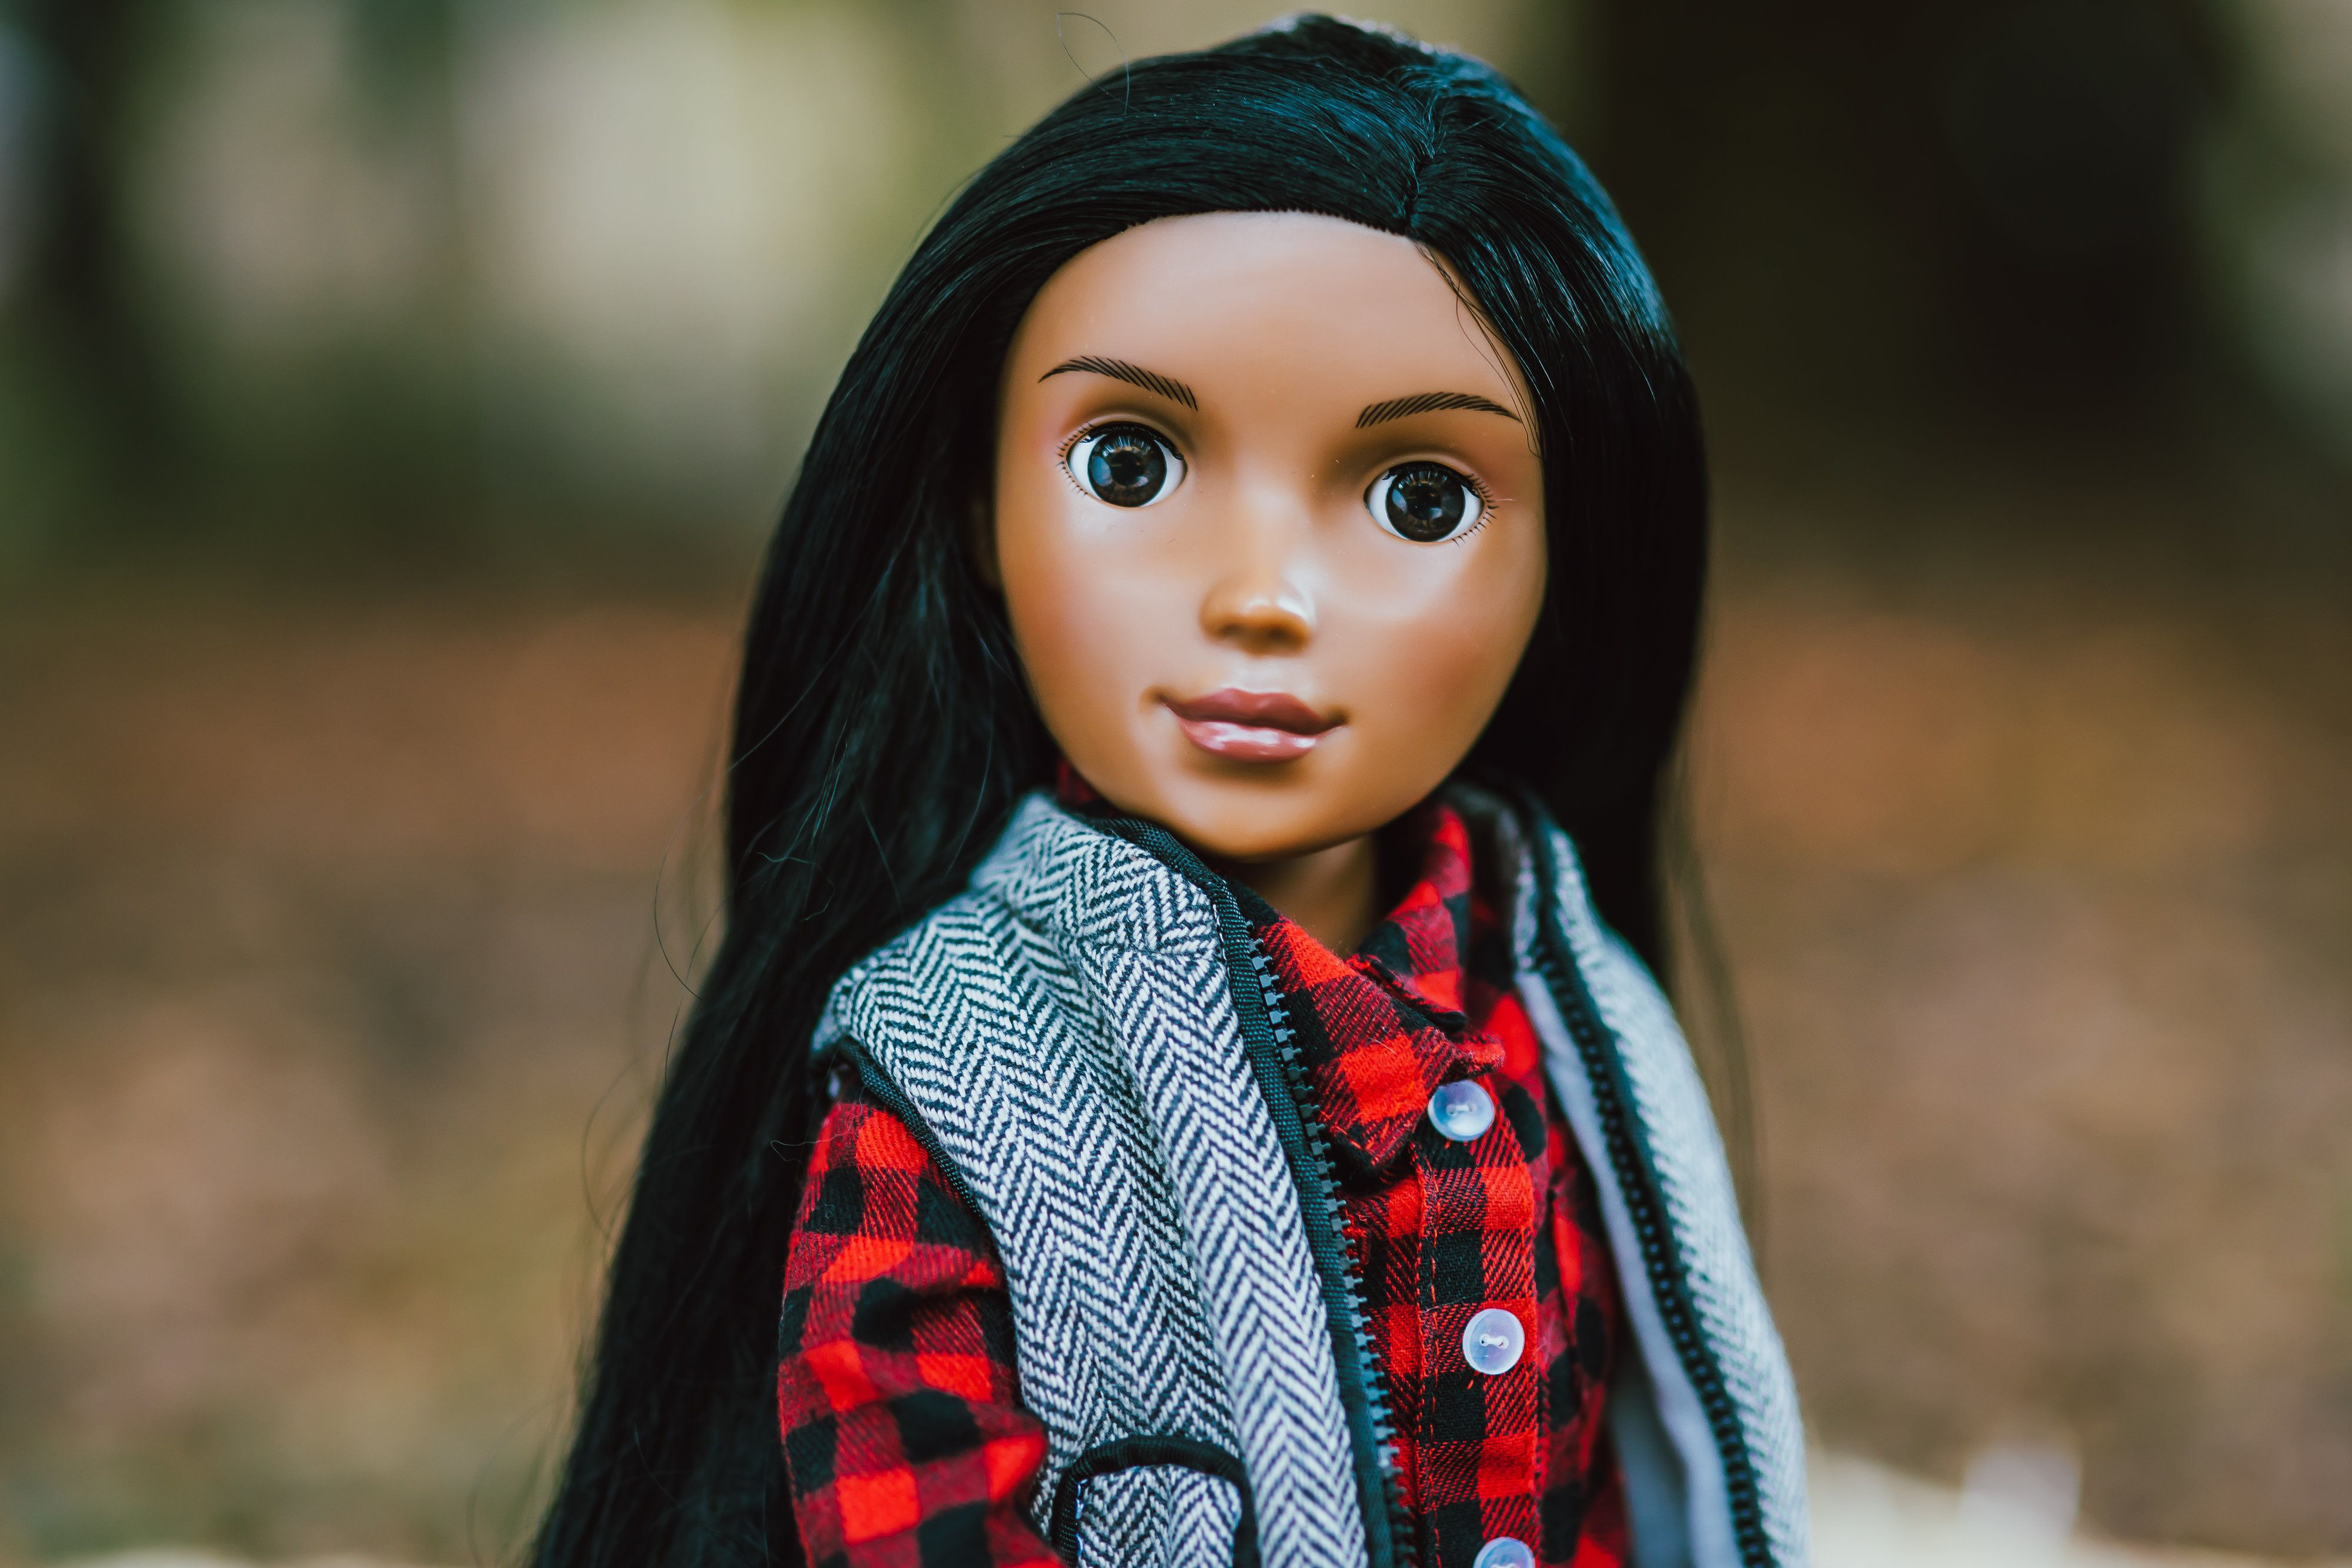 Neha Chauhan Woodward, the woman behind Girls & Co, created an Indian-American doll named Anjali. Woodward, who is also Indian-American, never had a doll who looked like her growing up.